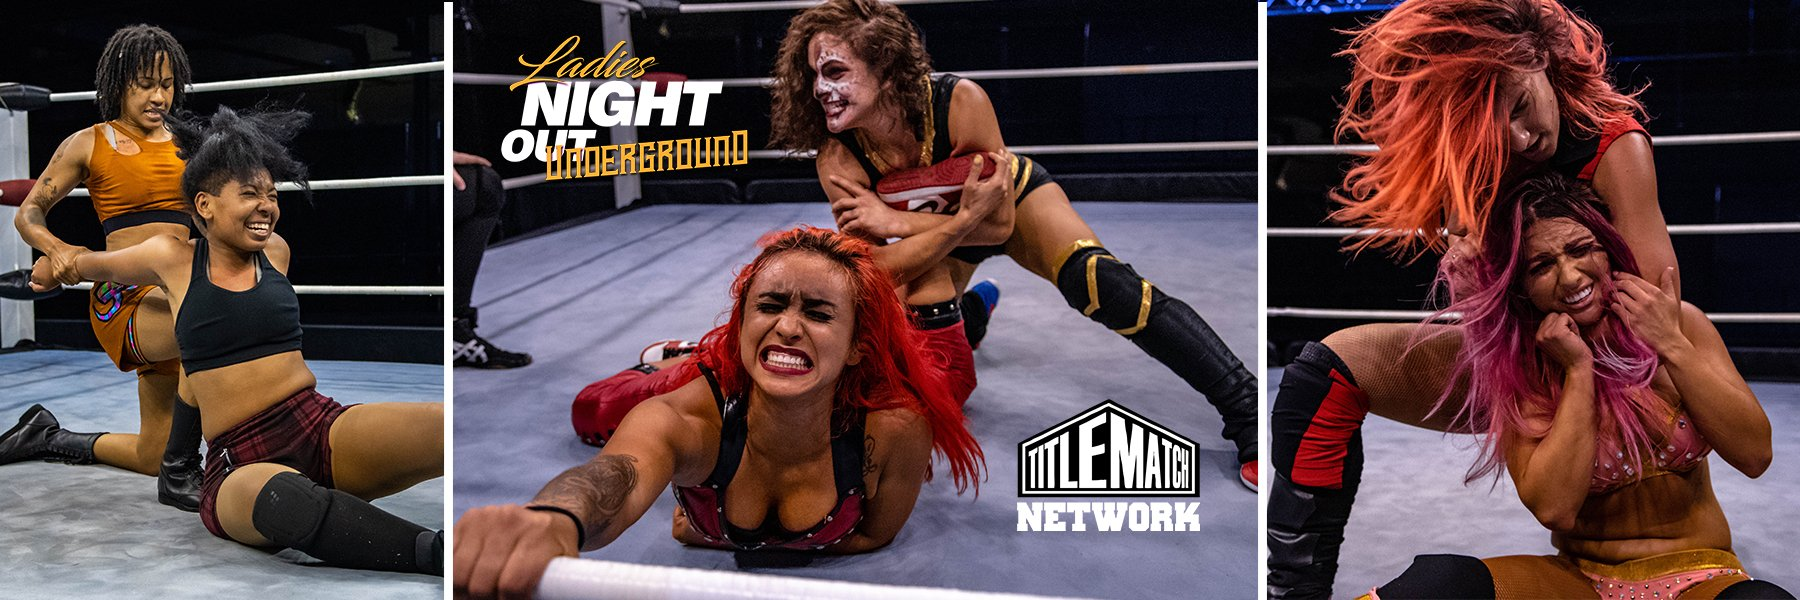 Ladies Night Out Underground 2! Thunder Rosa, Miranda Alize, Alex Gracia